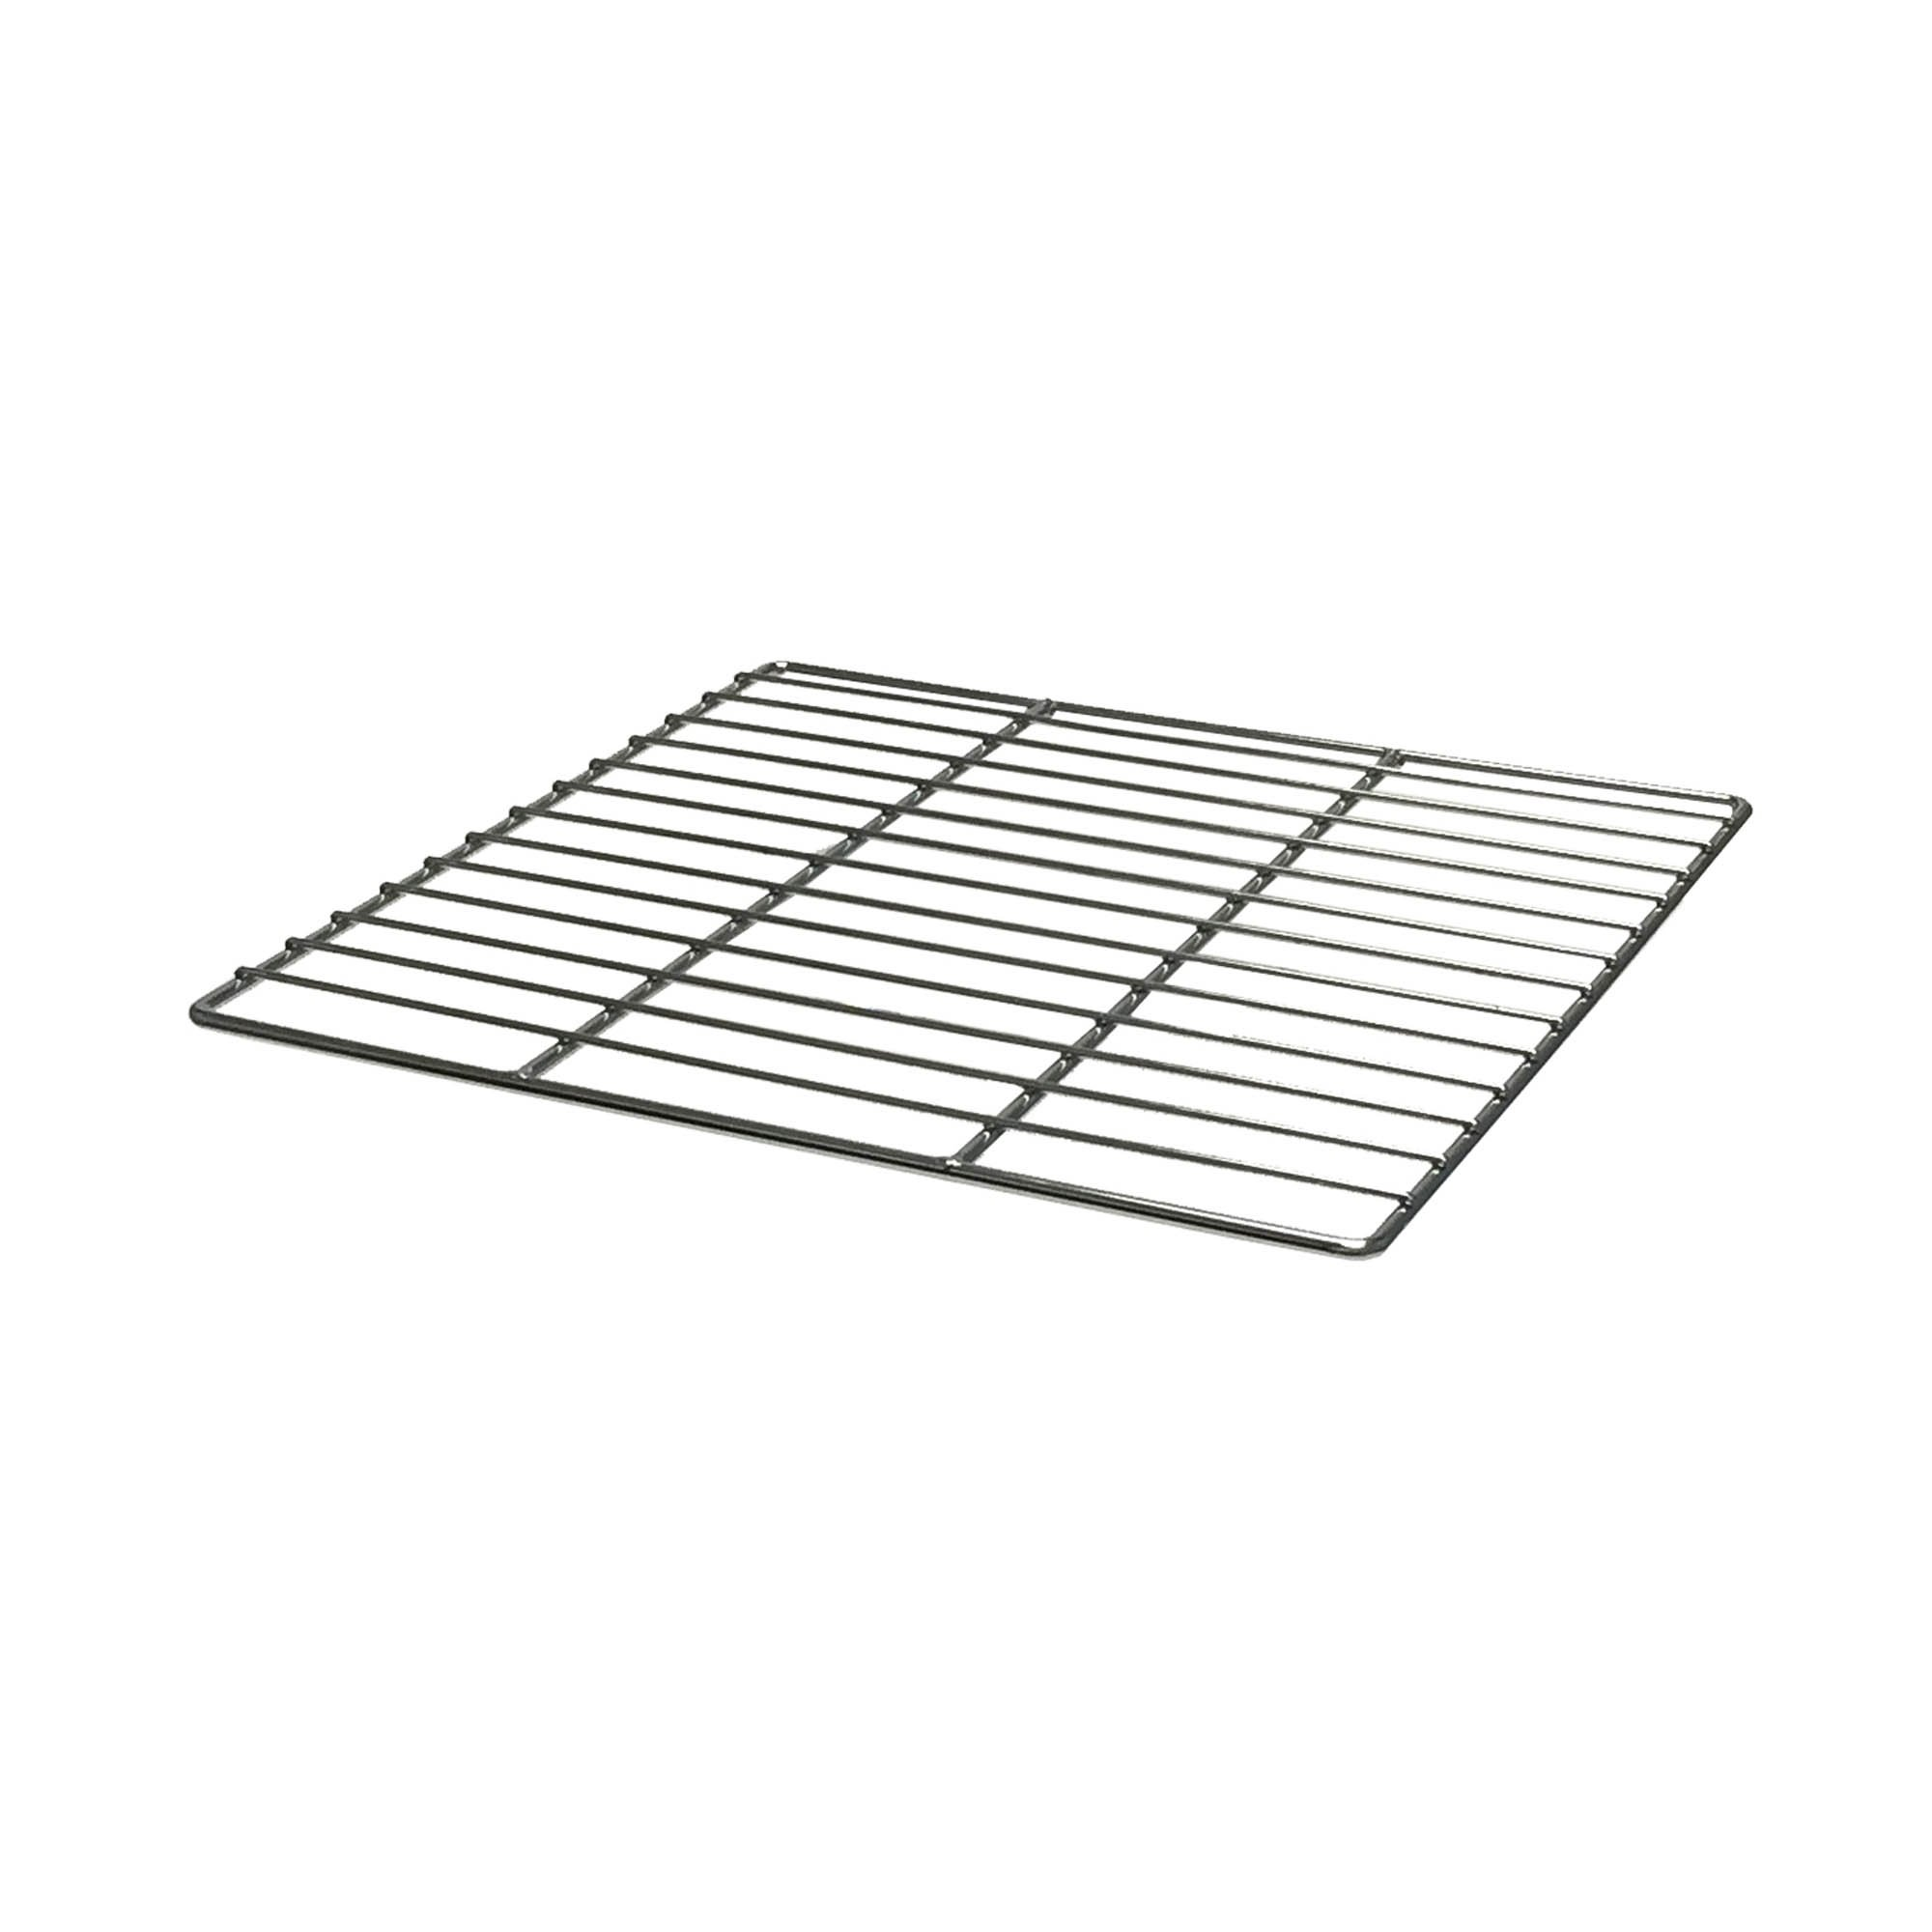 Extra Shelf, stainless steel for H2505-40